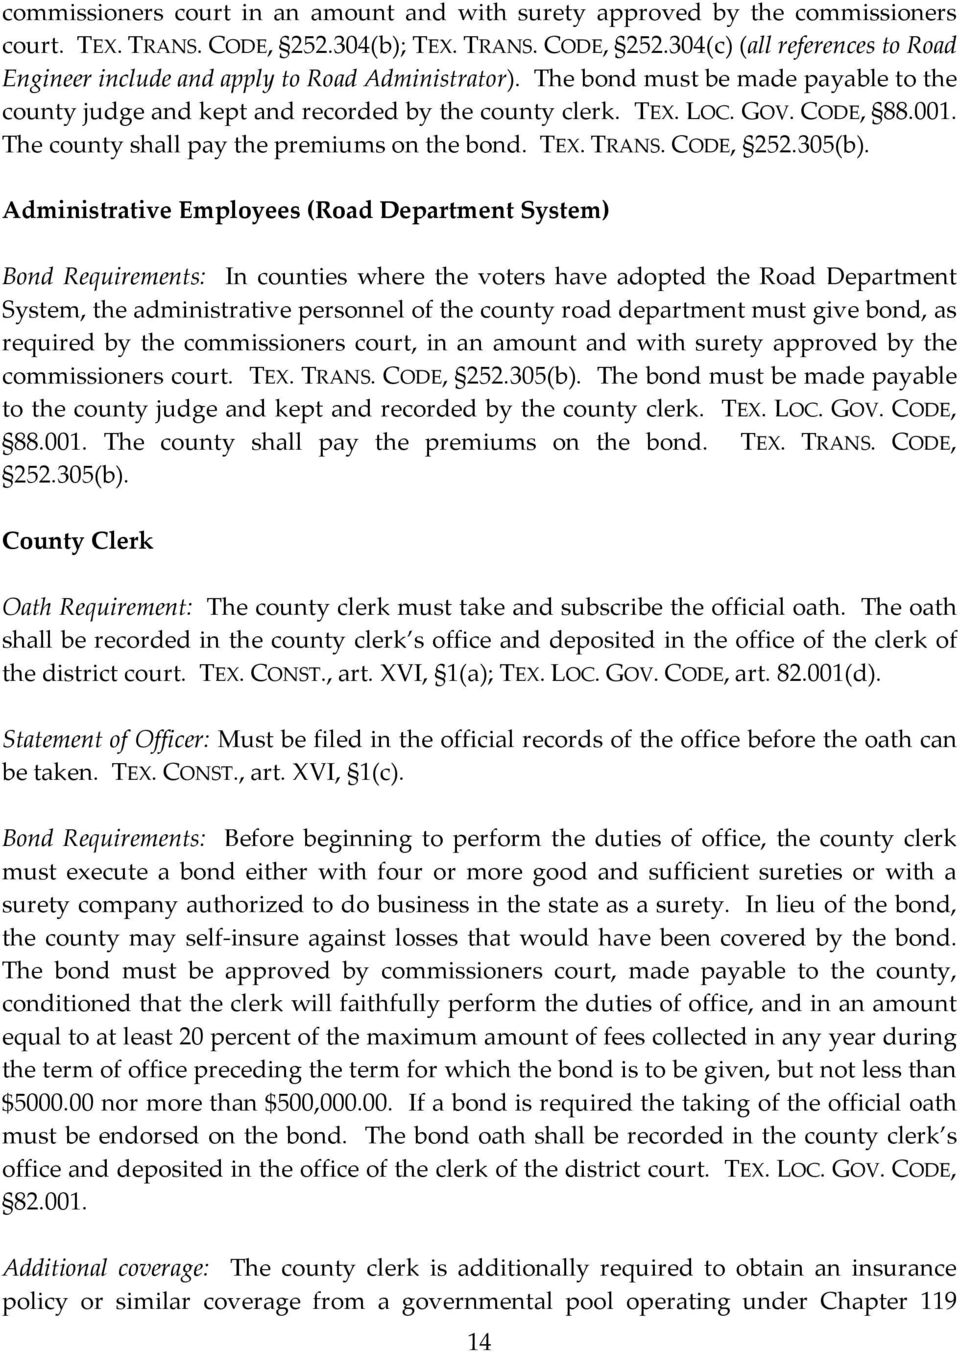 Administrative Employees (Road Department System) Bond Requirements: In counties where the voters have adopted the Road Department System, the administrative personnel of the county road department